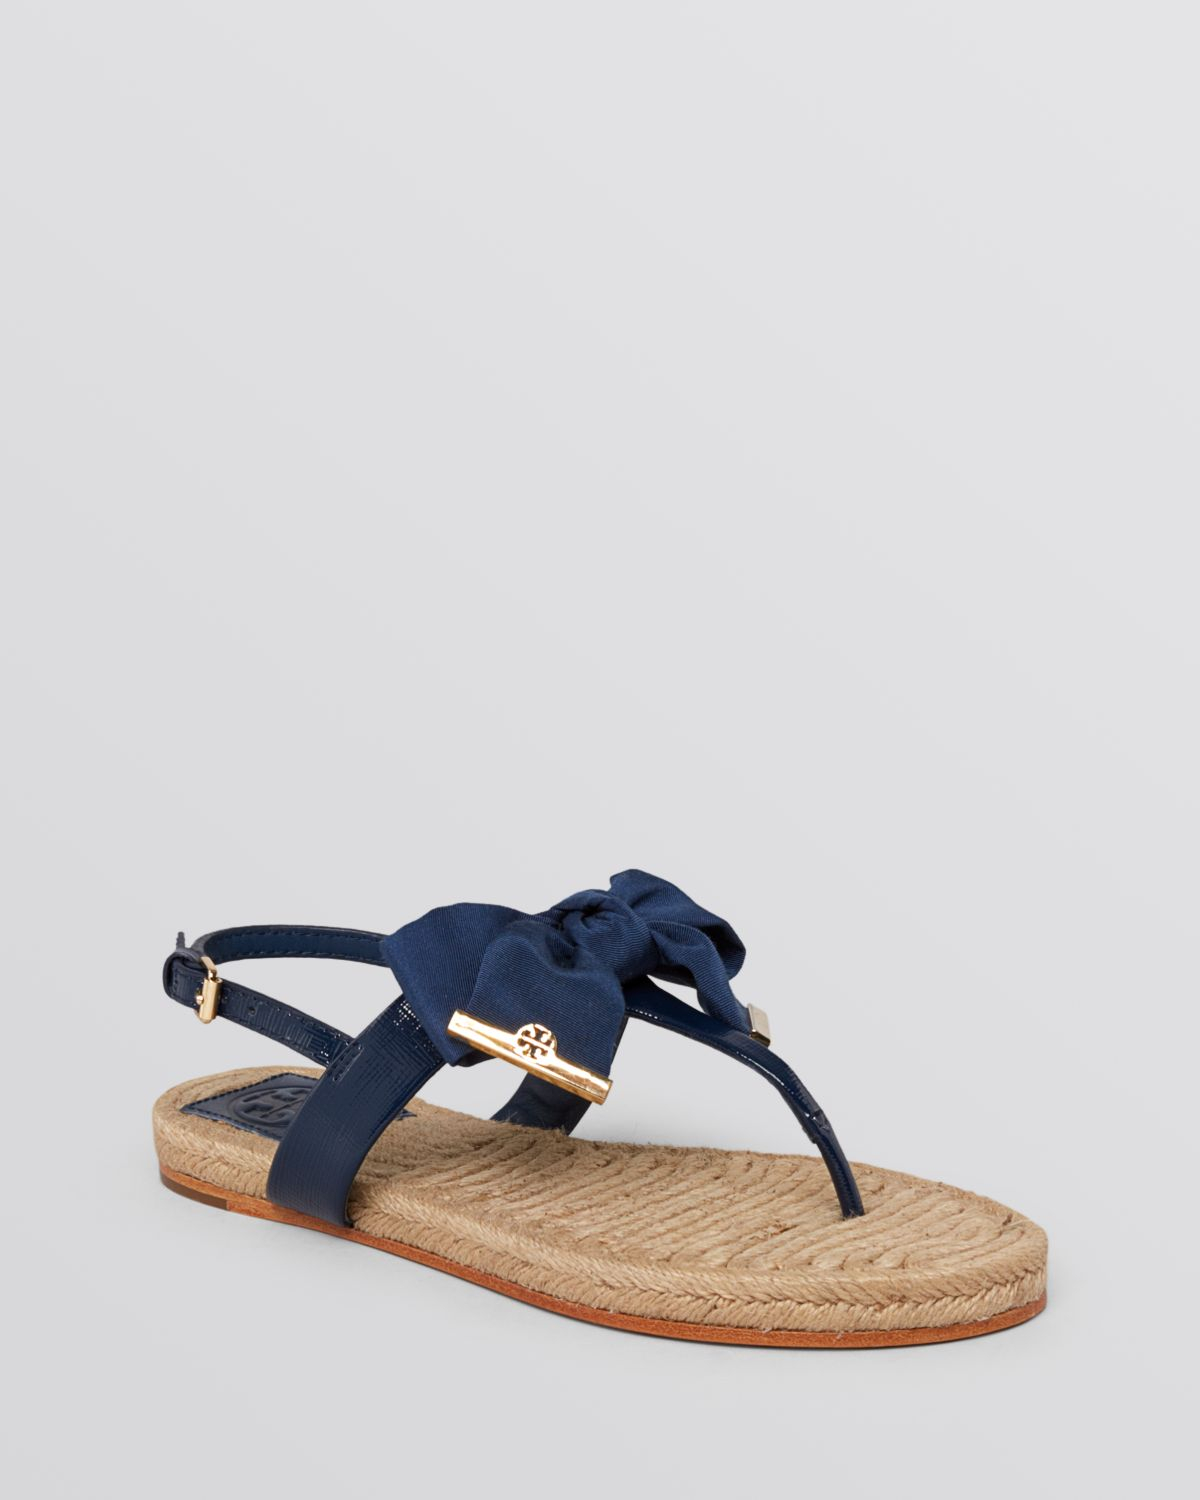 6e160abd400 Lyst - Tory Burch Flat Thong Sandals Penny Bow in Blue